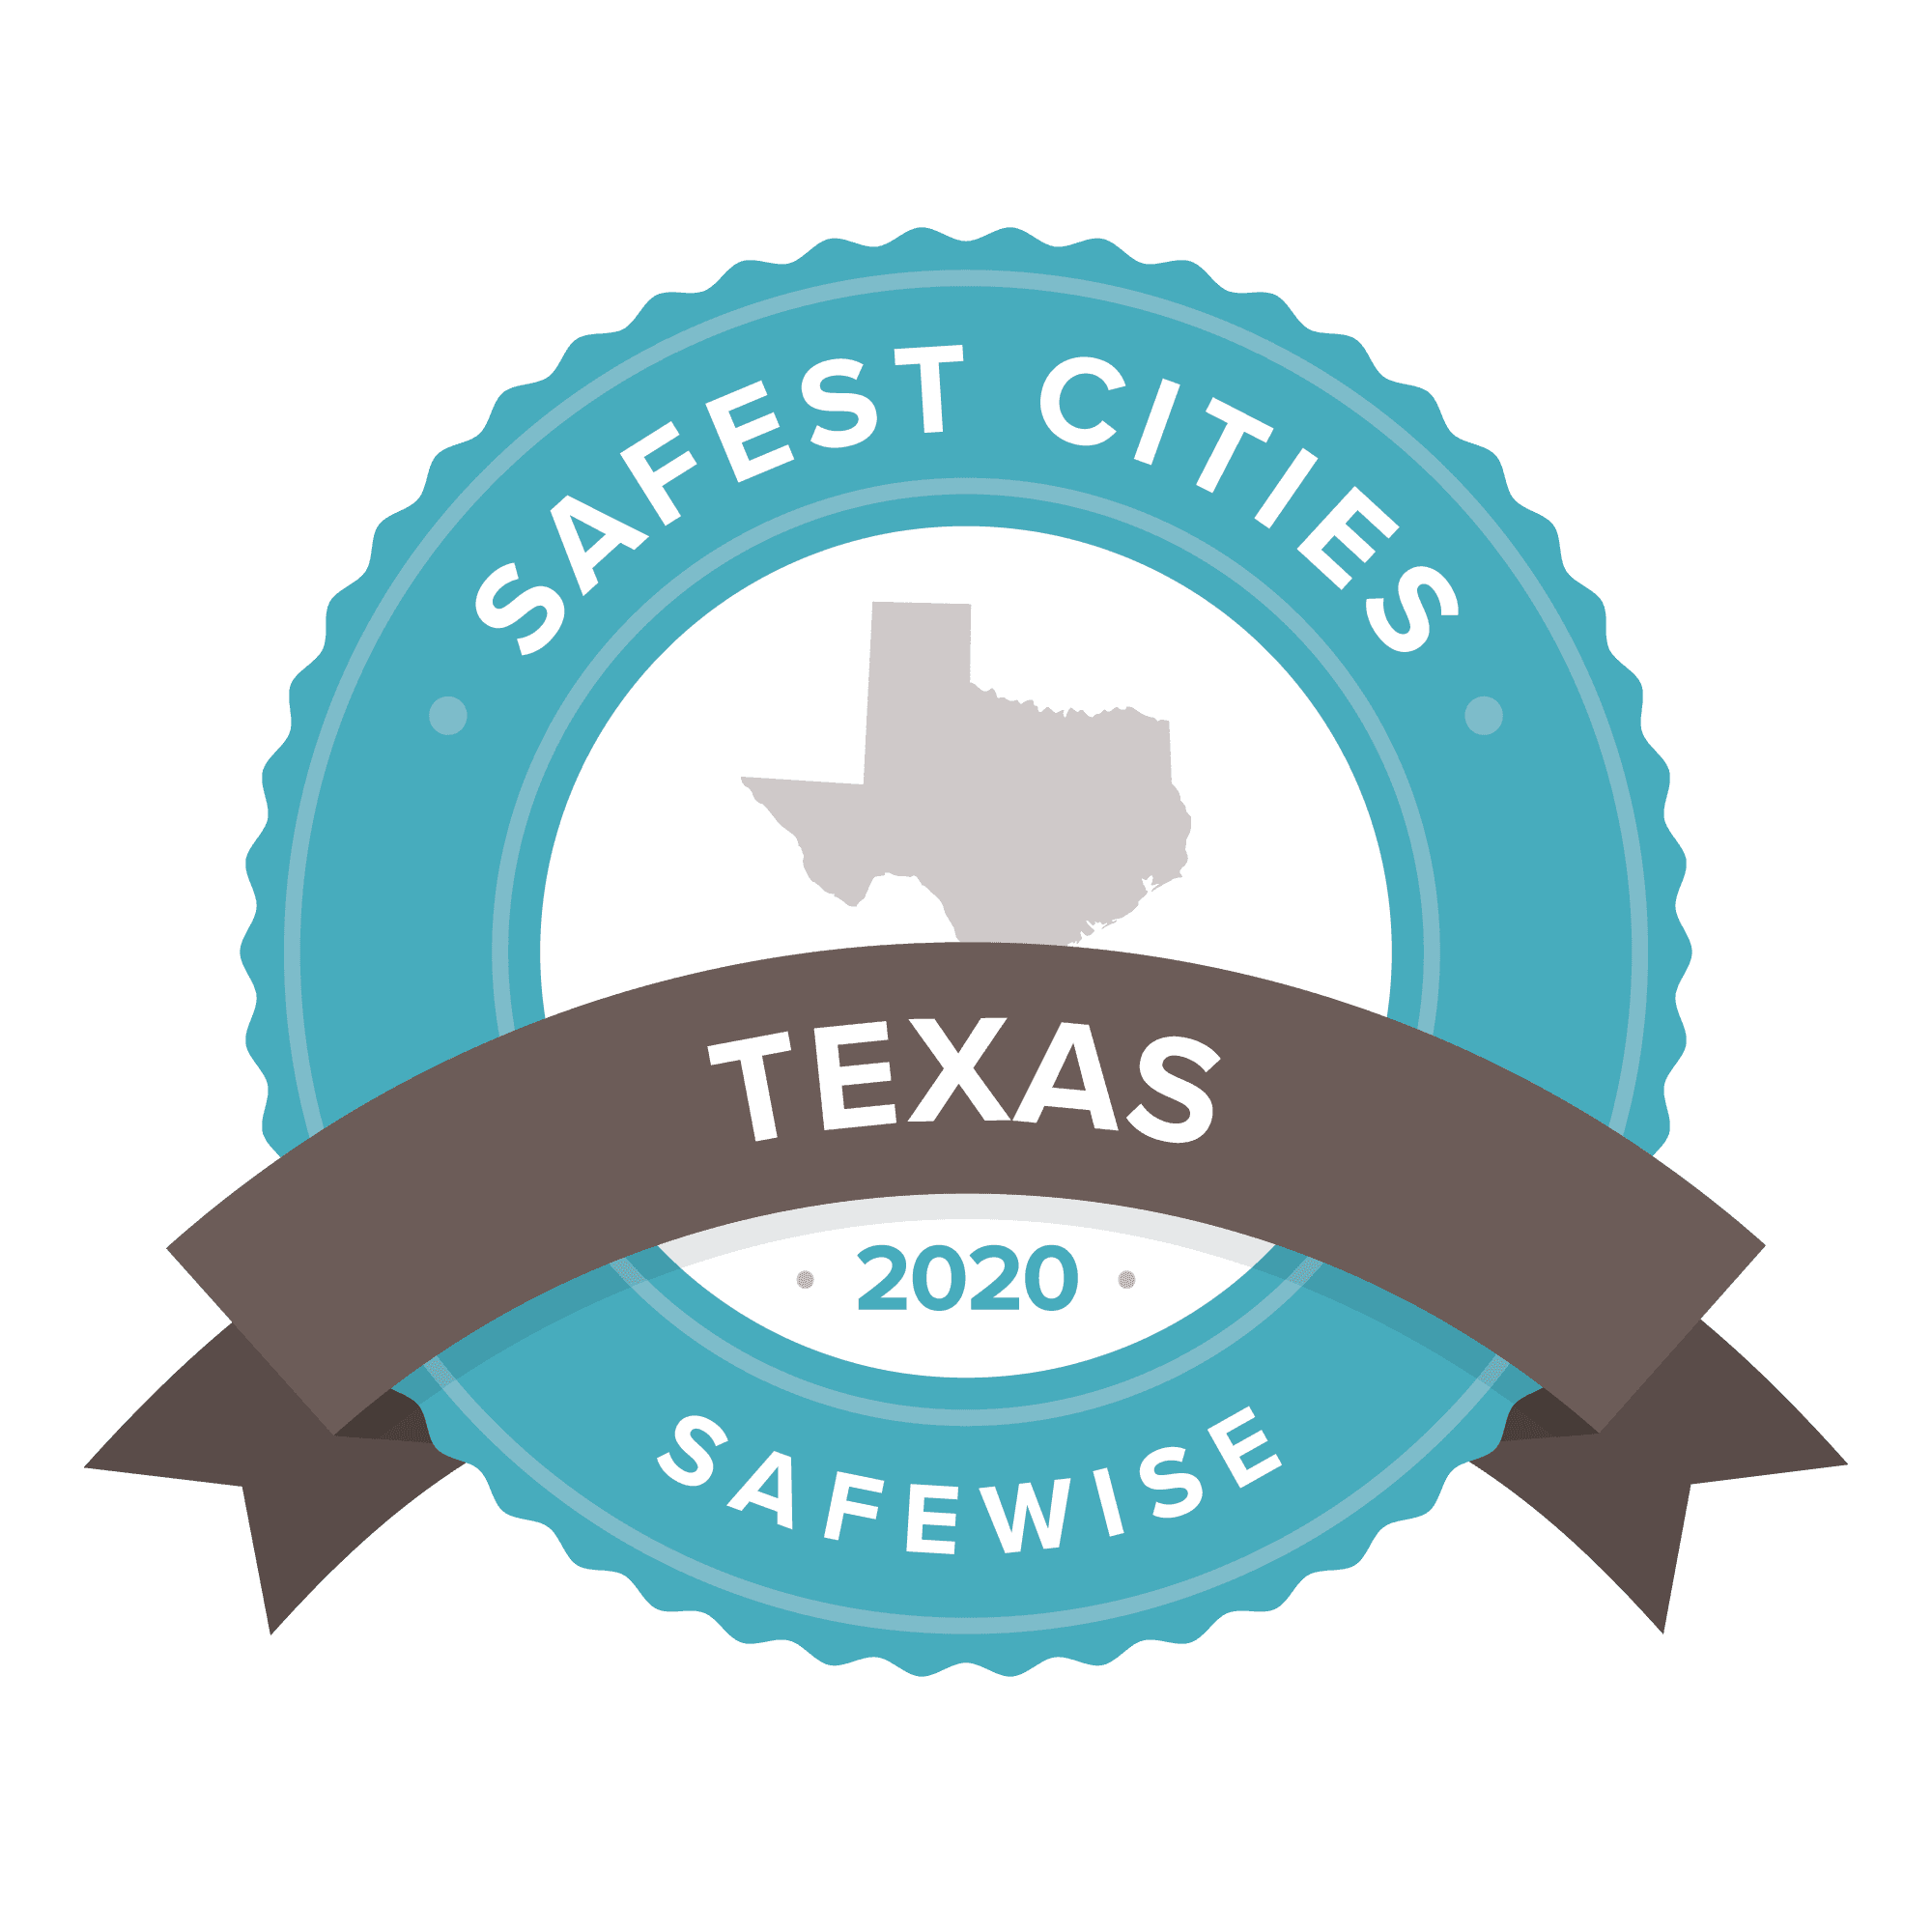 Safest City Texas